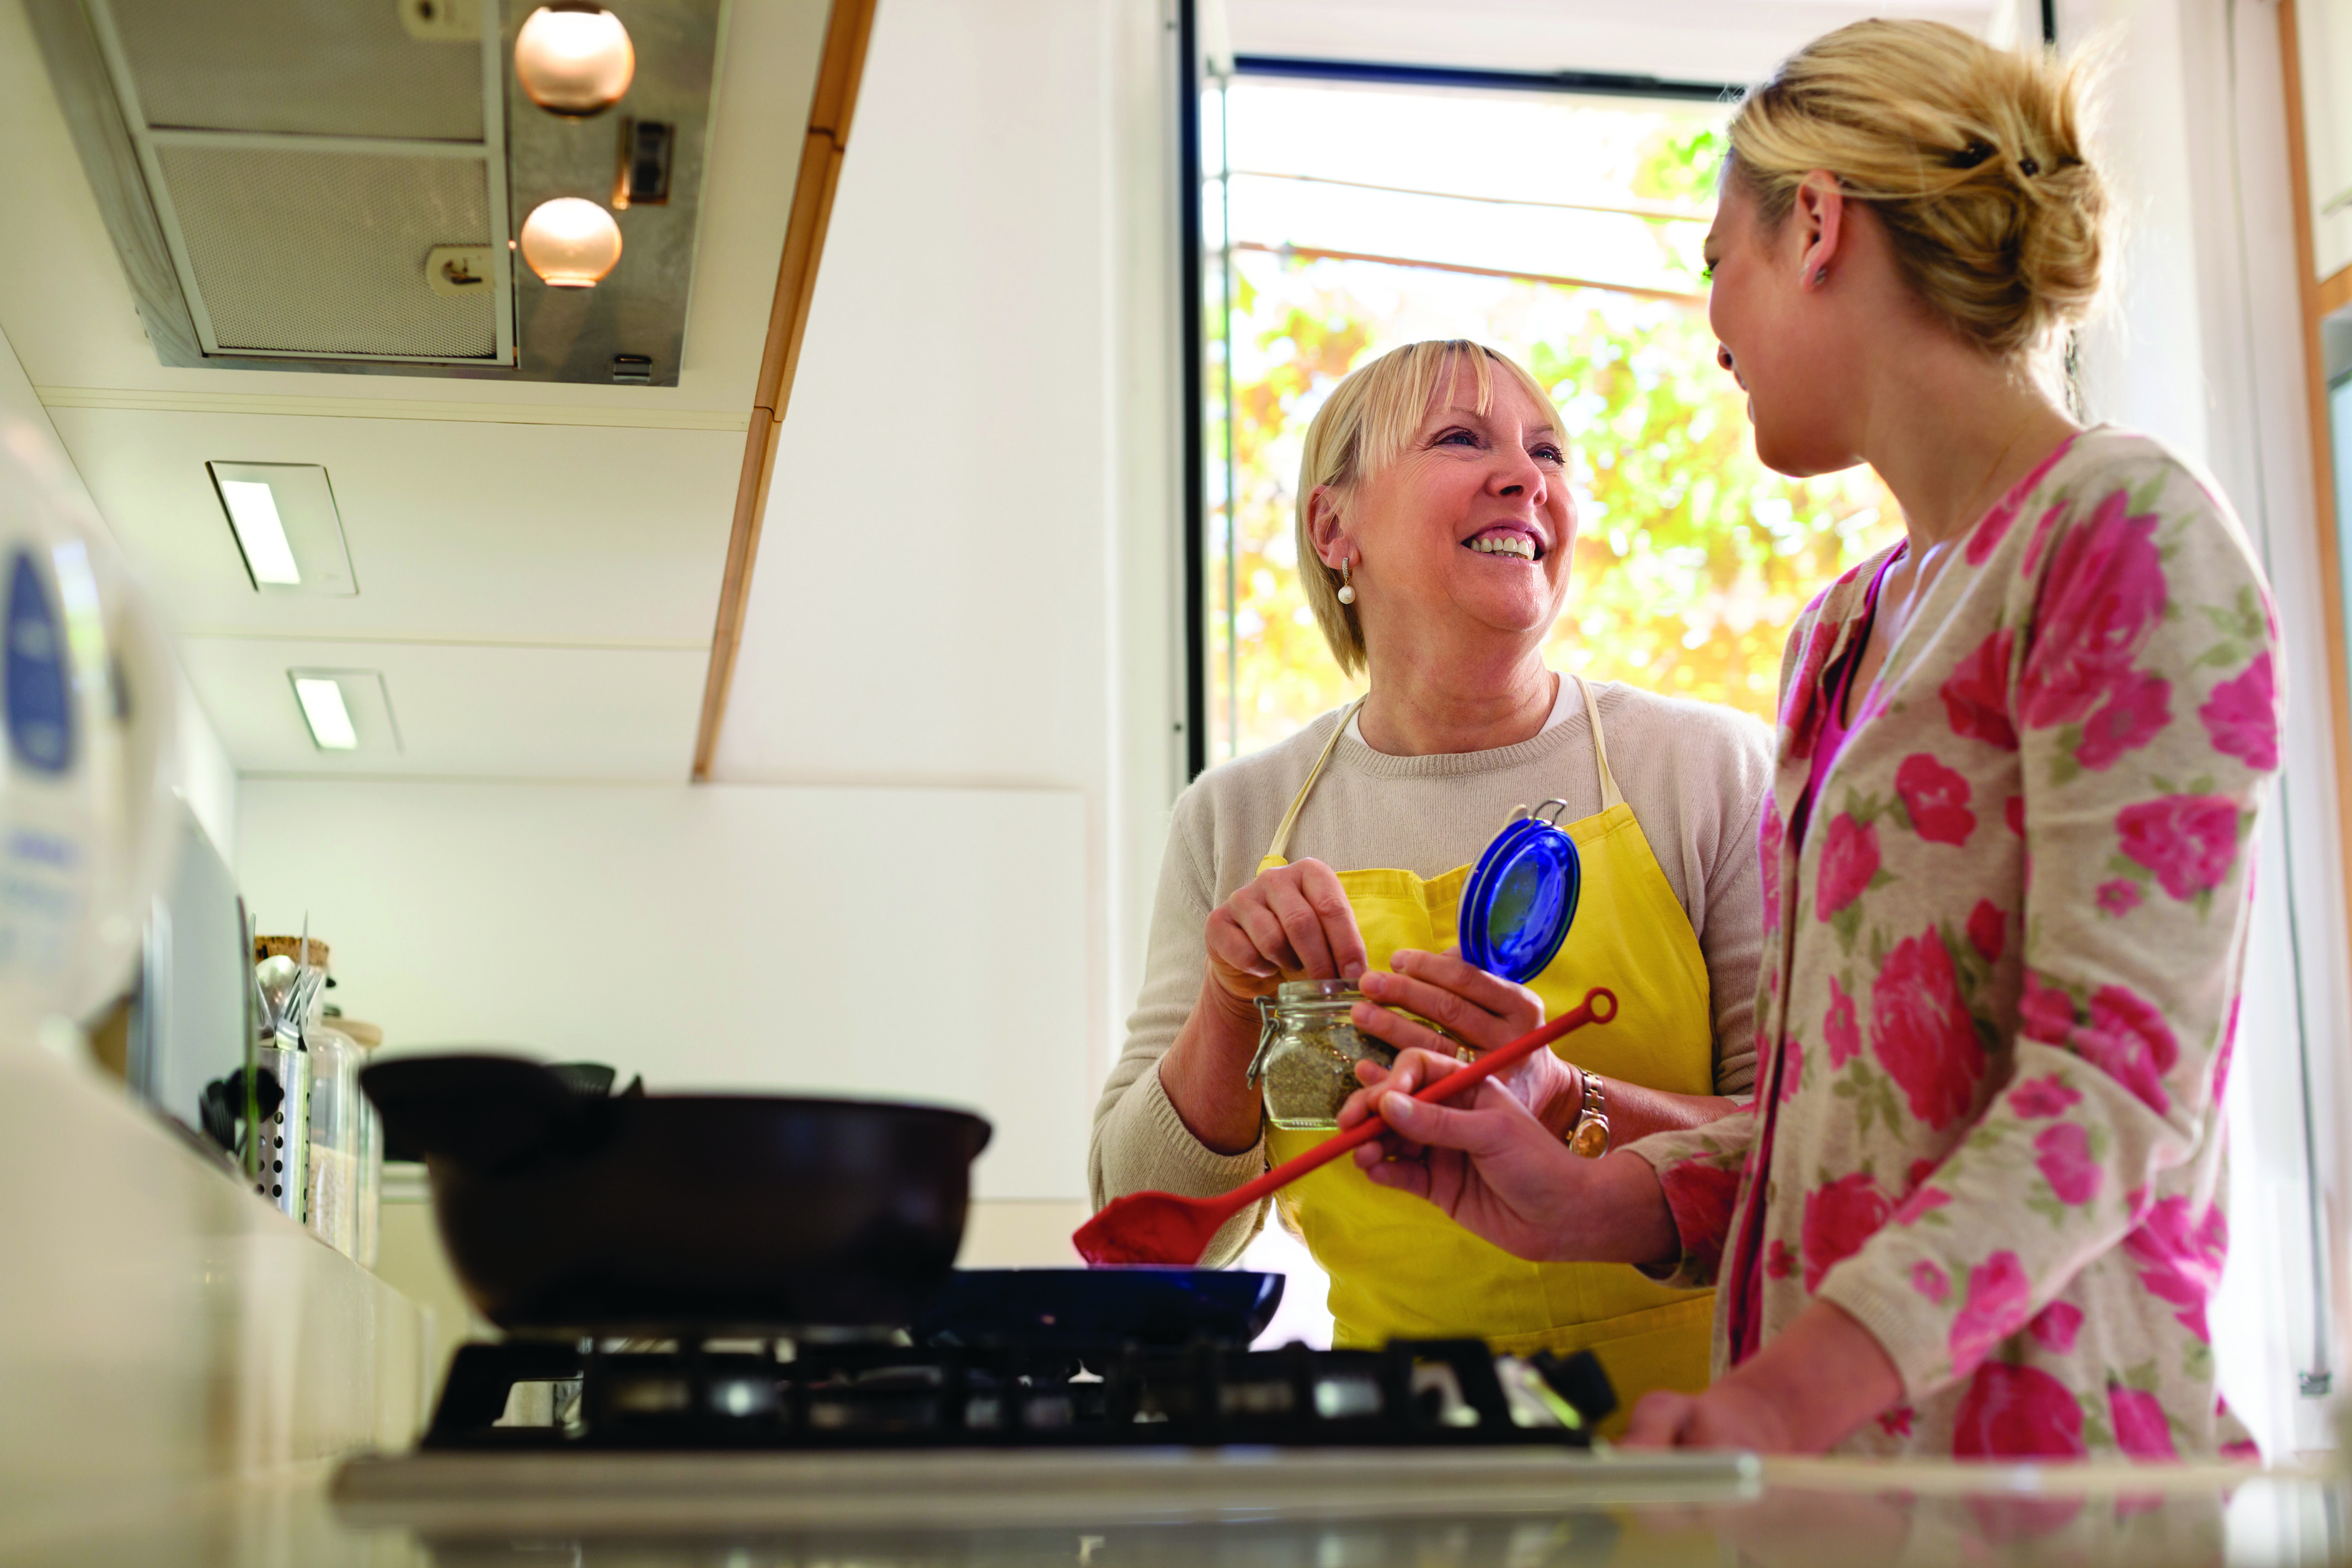 Two women talking while cooking a meal.